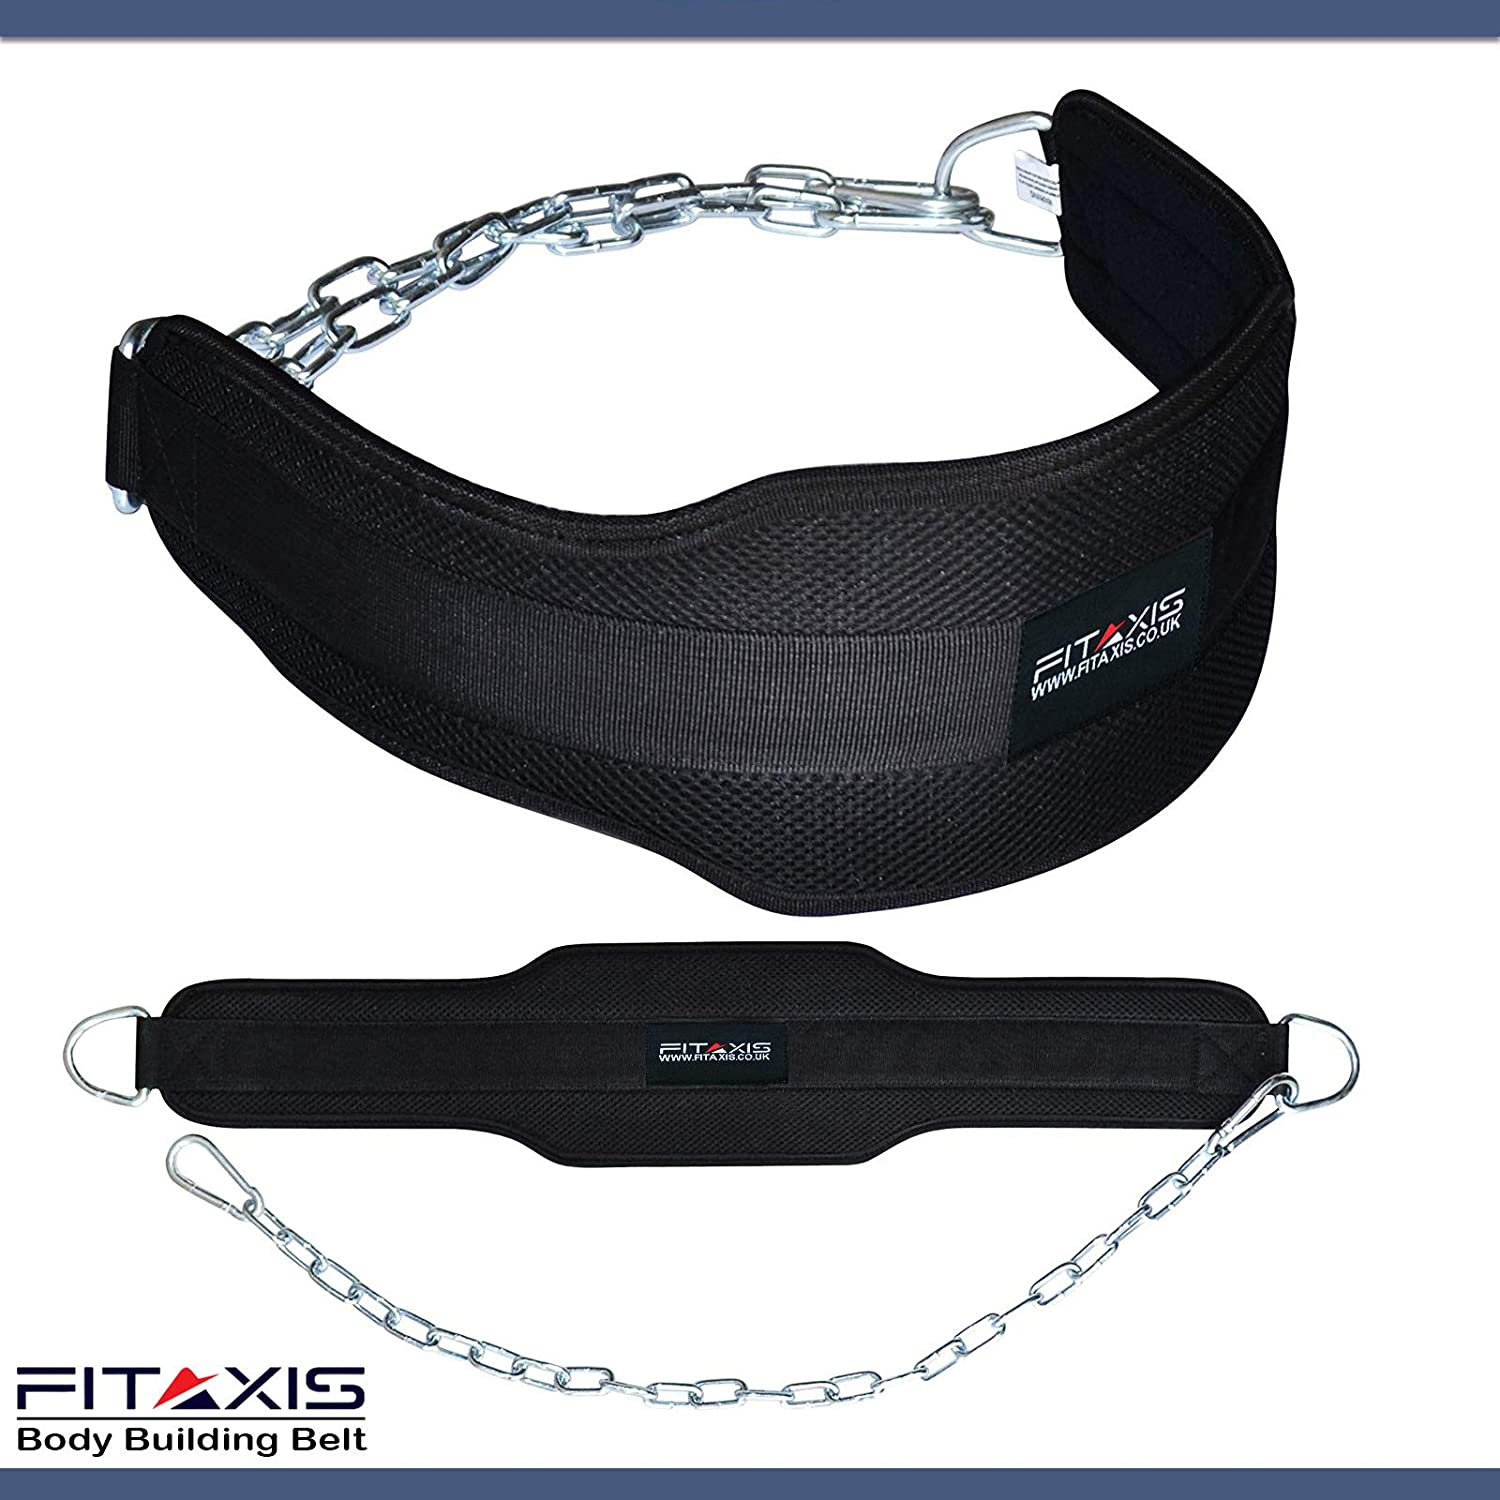 """Weighted Parallel Dips Double Padded Platform Squats FITAXIS Dipping Belt for Weight Lifting Body Building Adjustable Steel Chain Original Neoprene 7/"""" Wide 10 mm Thick Support for Chin Pull Ups"""